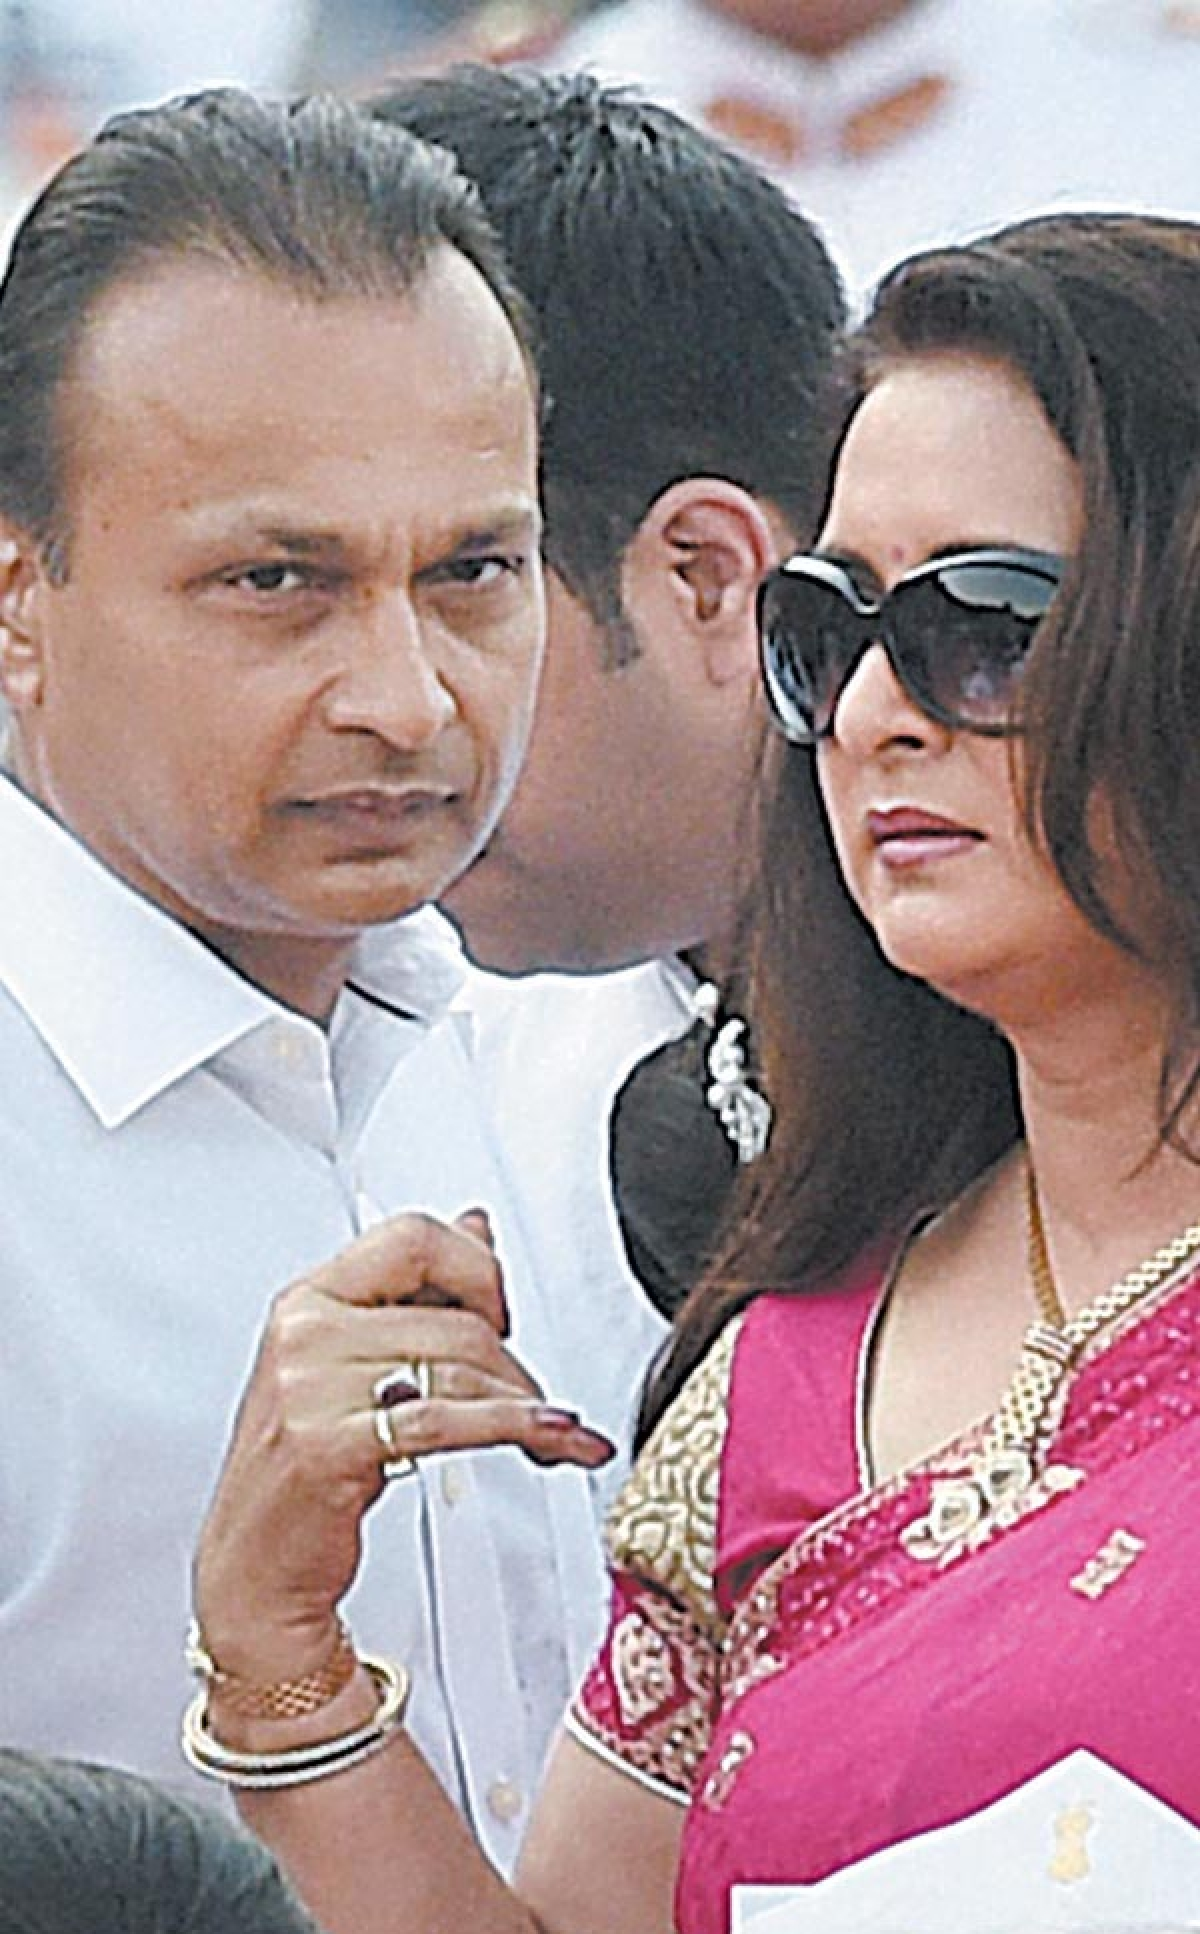 GLAM QUOTIENT: Industrialist Anil Ambani and actress Poonam Dhillon at the swearing-in ceremony.